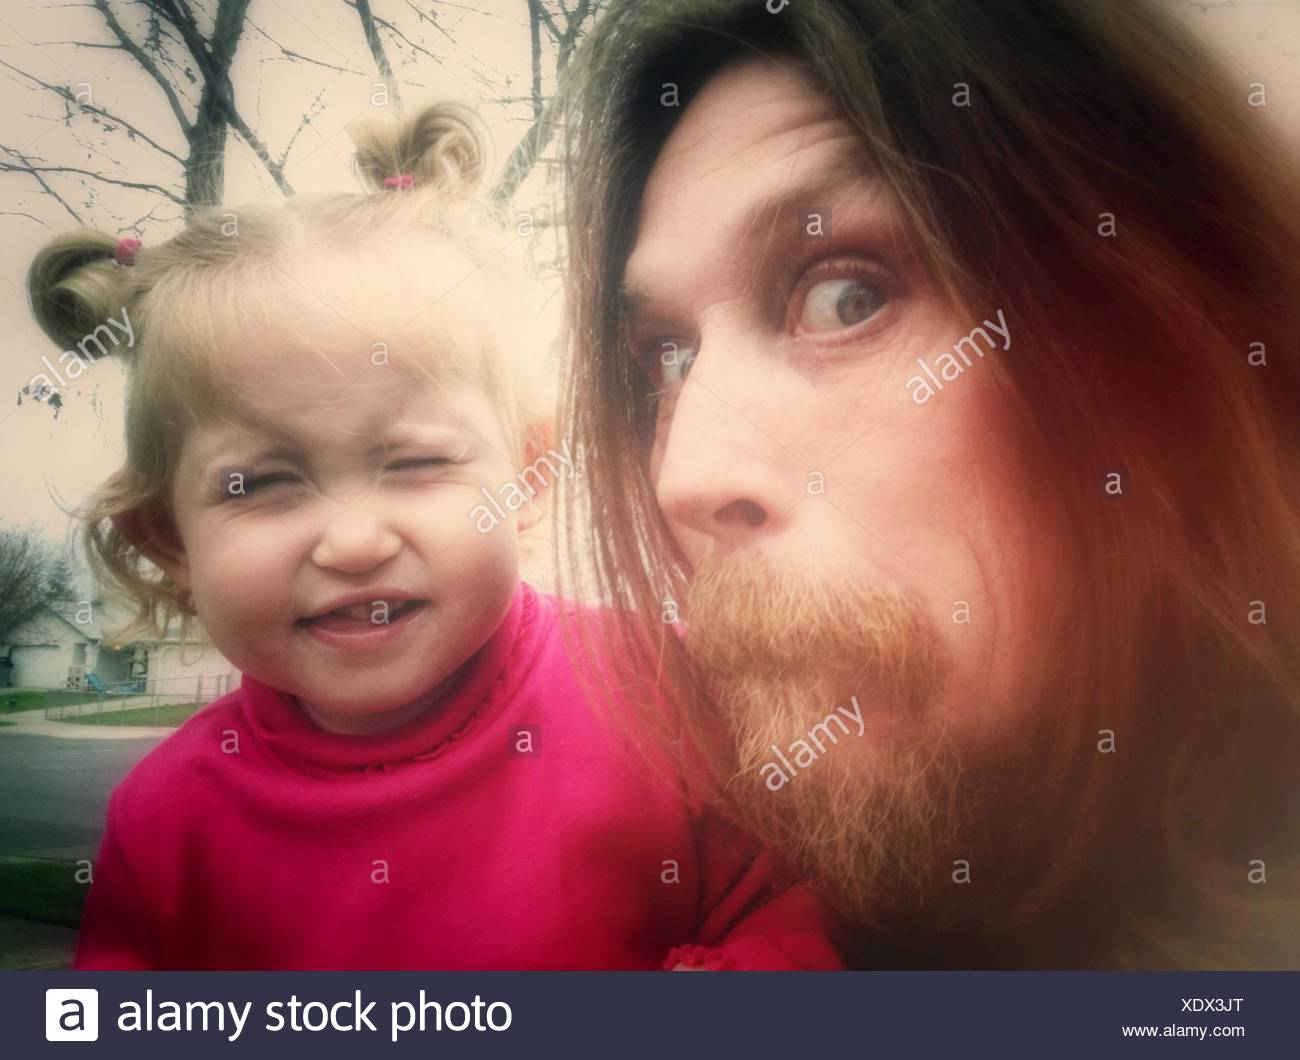 Close-Up Ritratto di un uomo e di una bambina rendendo volti Foto Stock